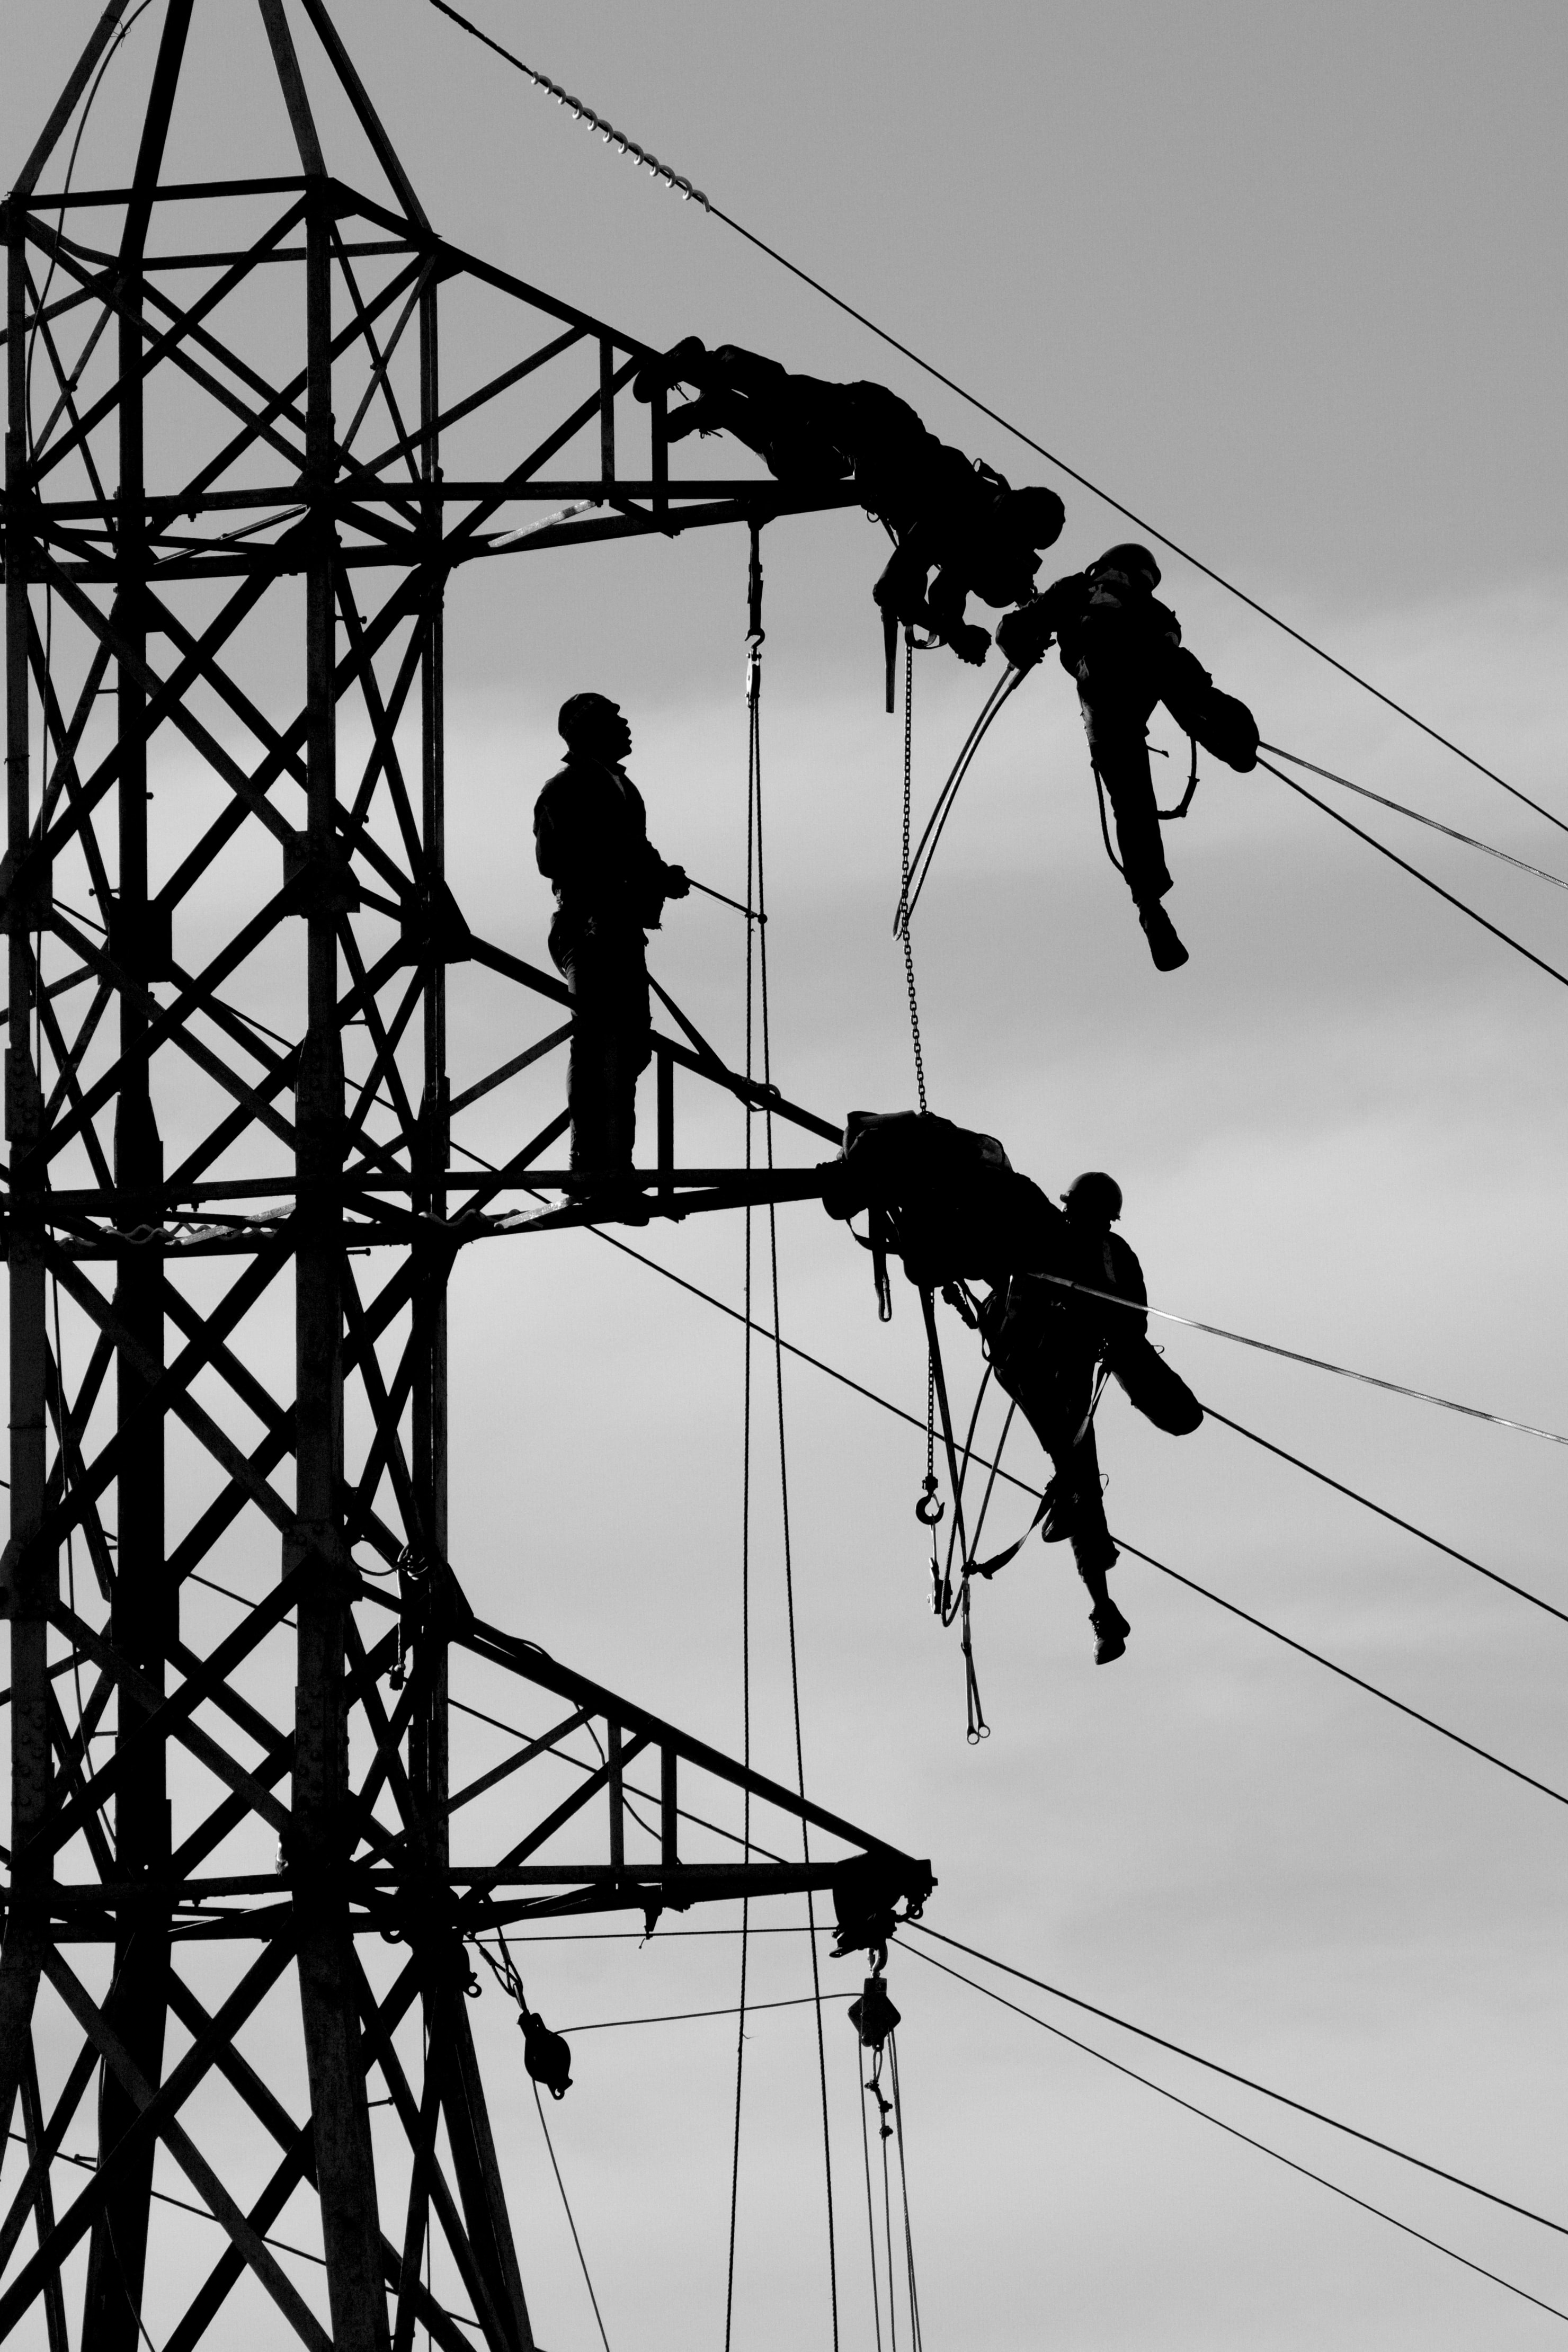 Utility workers conducting maintenance on power lines